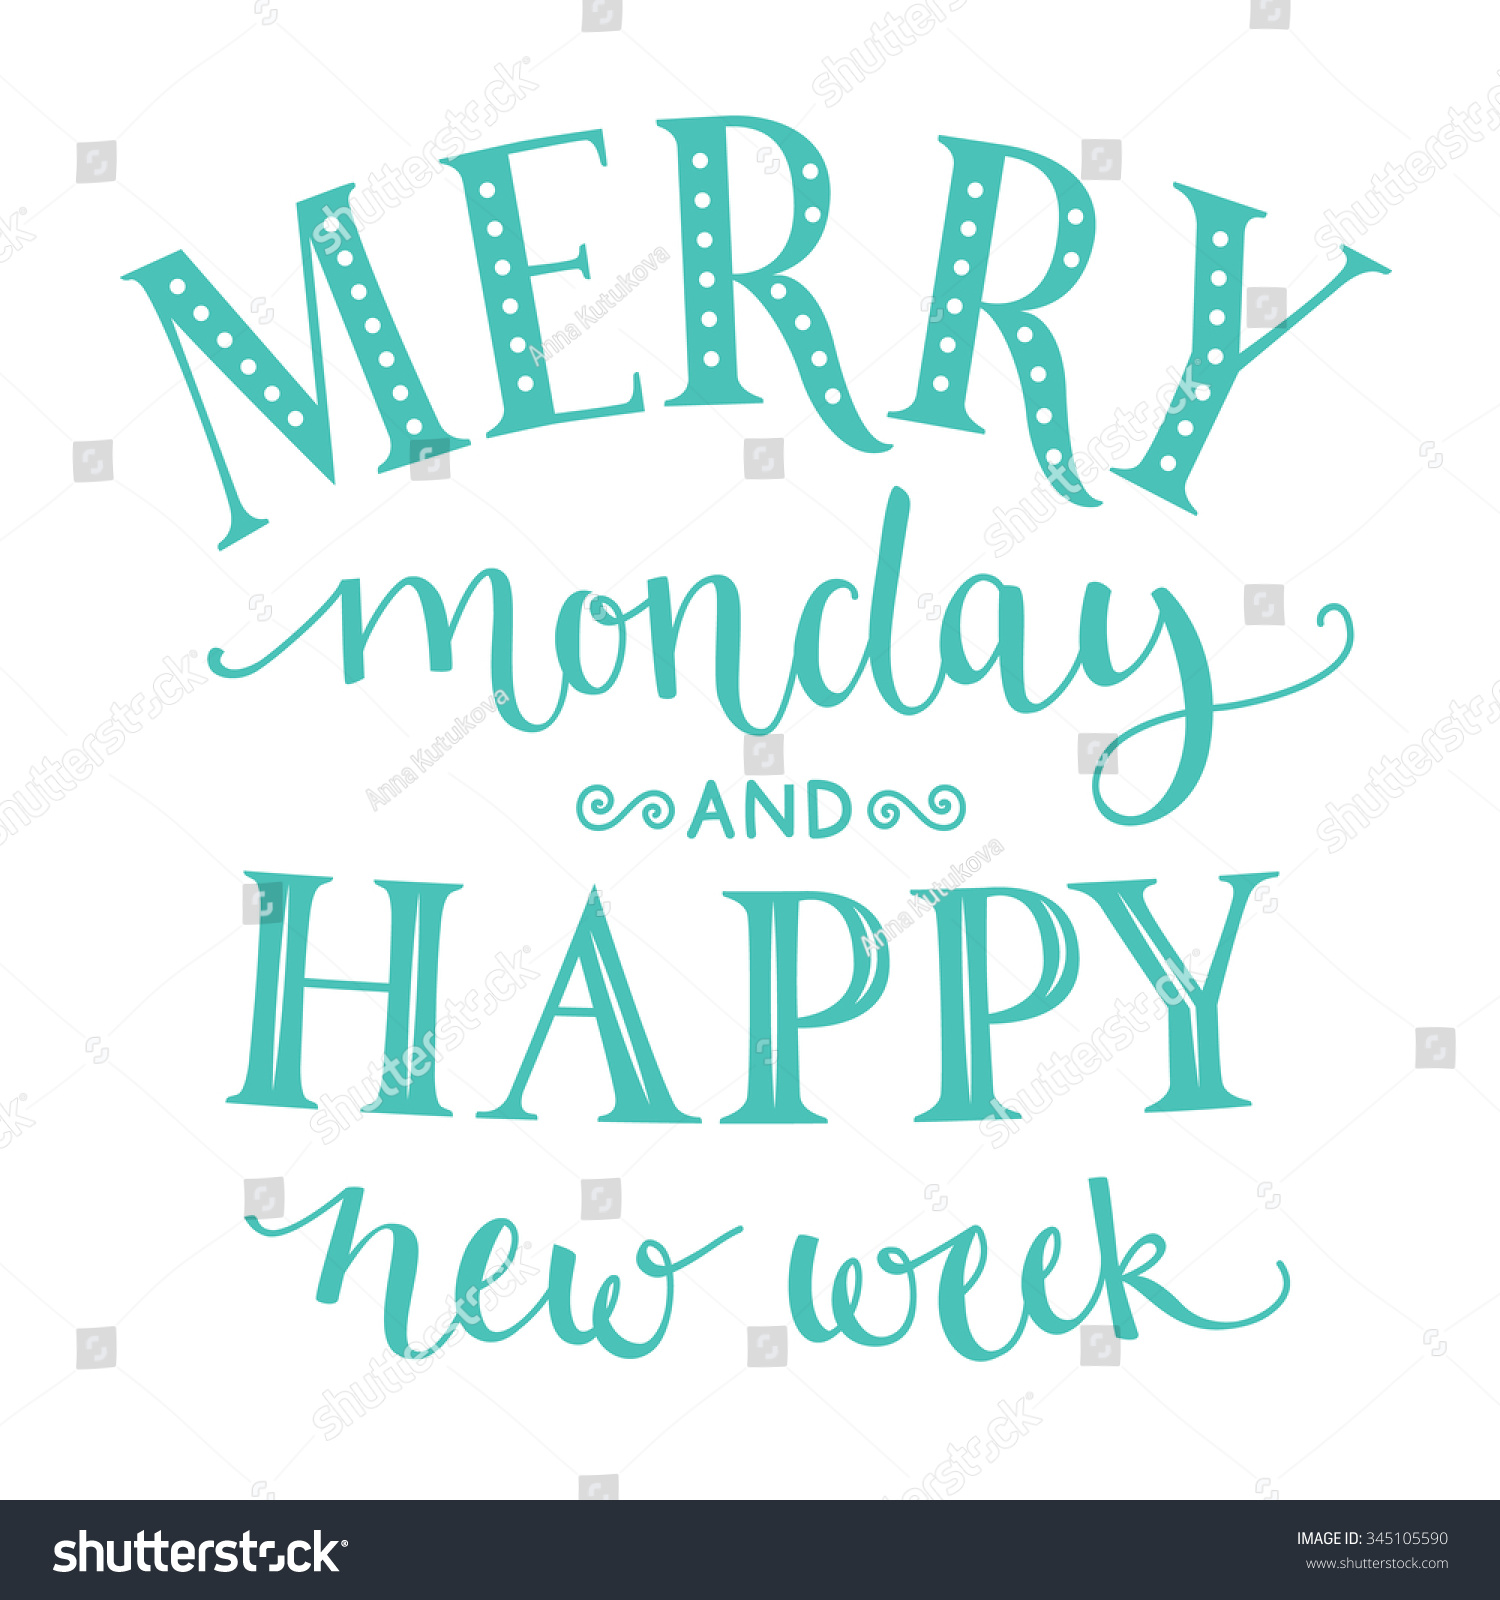 New Week Quotes Merry Monday Happy New Week Inspirational Stock Illustration  New Week Quotes